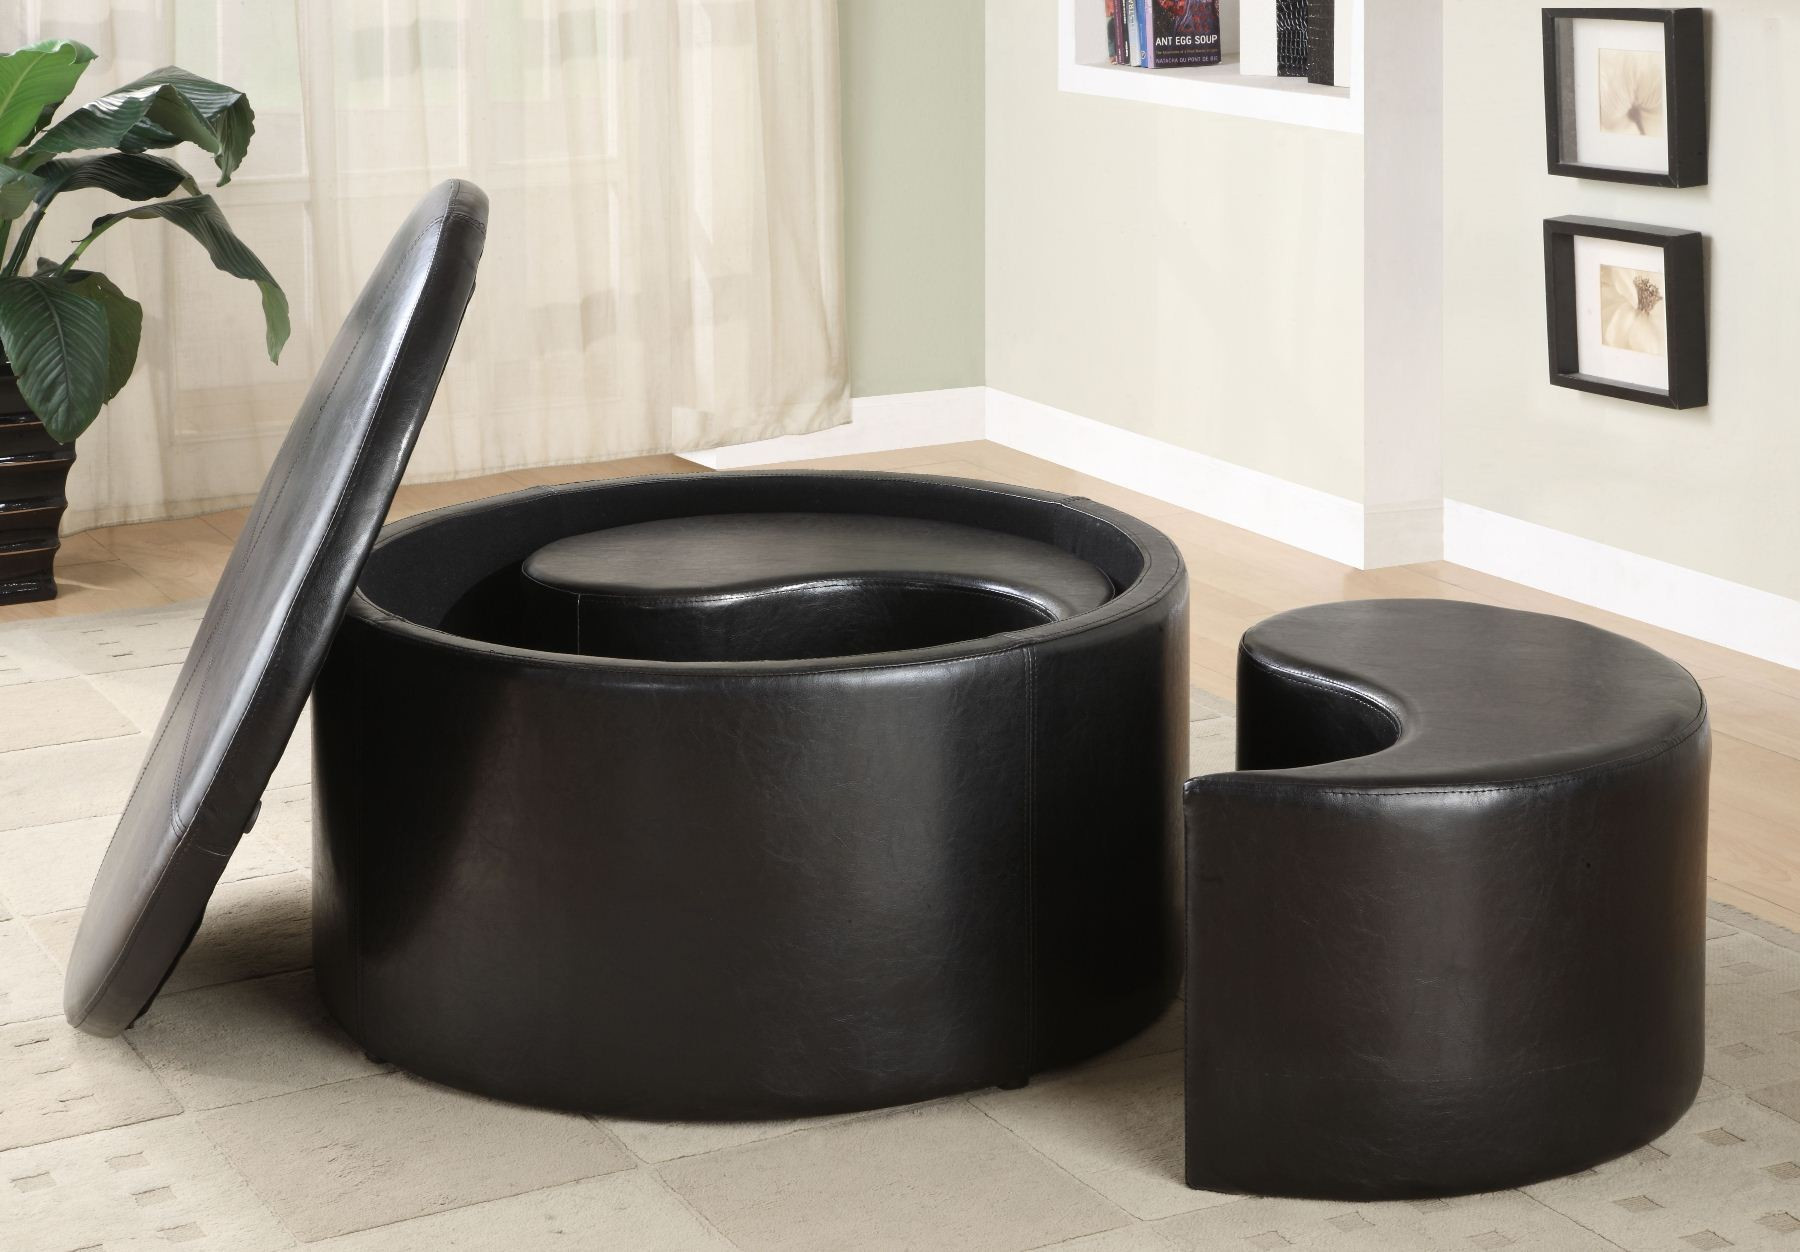 Best ideas about Round Storage Coffee Table . Save or Pin Houston Round Storage Cocktail Table with 2 Kidney Now.